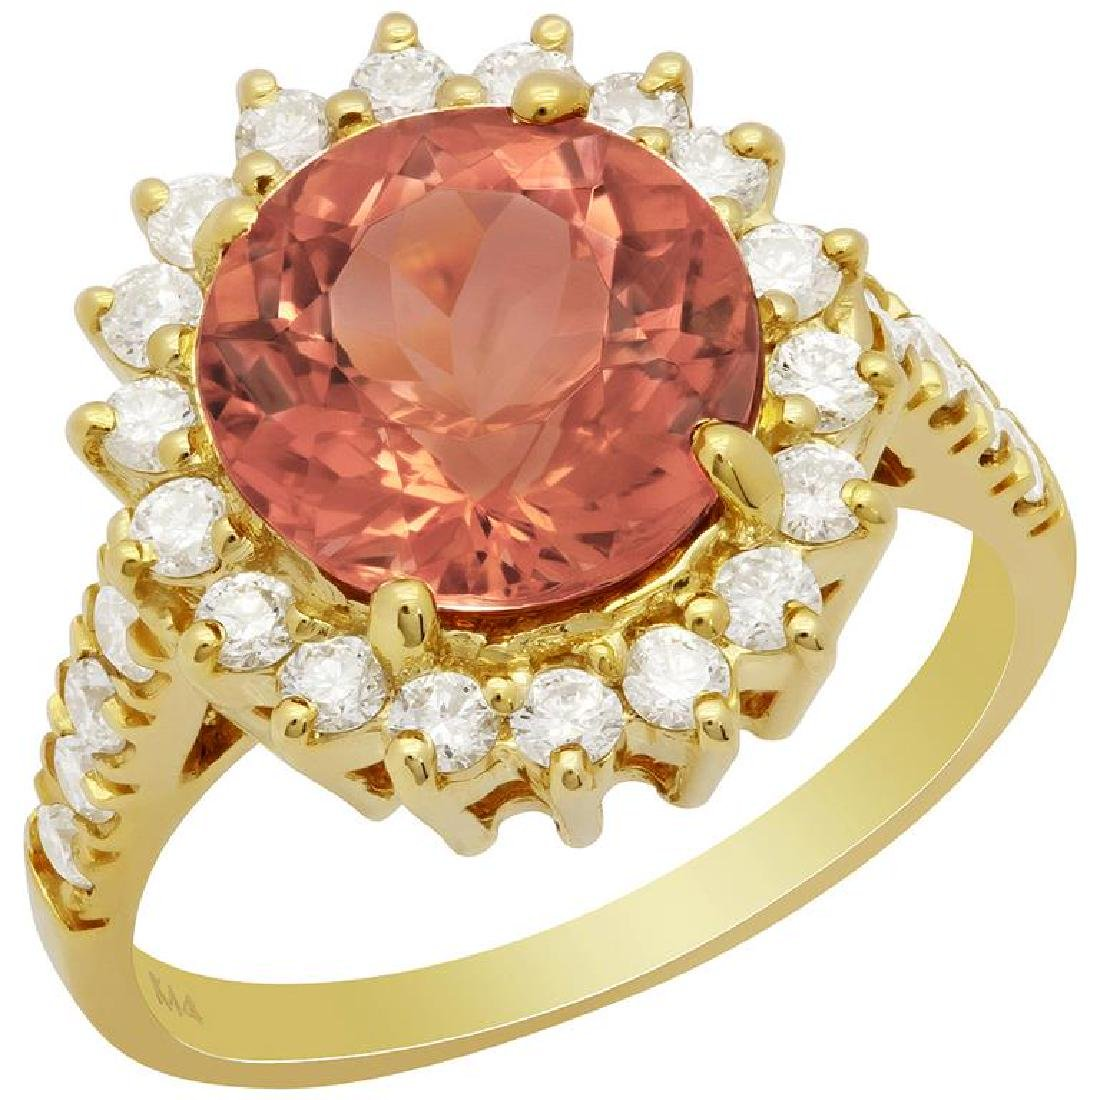 14k Yellow Gold 3.56ct Tourmaline 0.81ct Diamond Ring